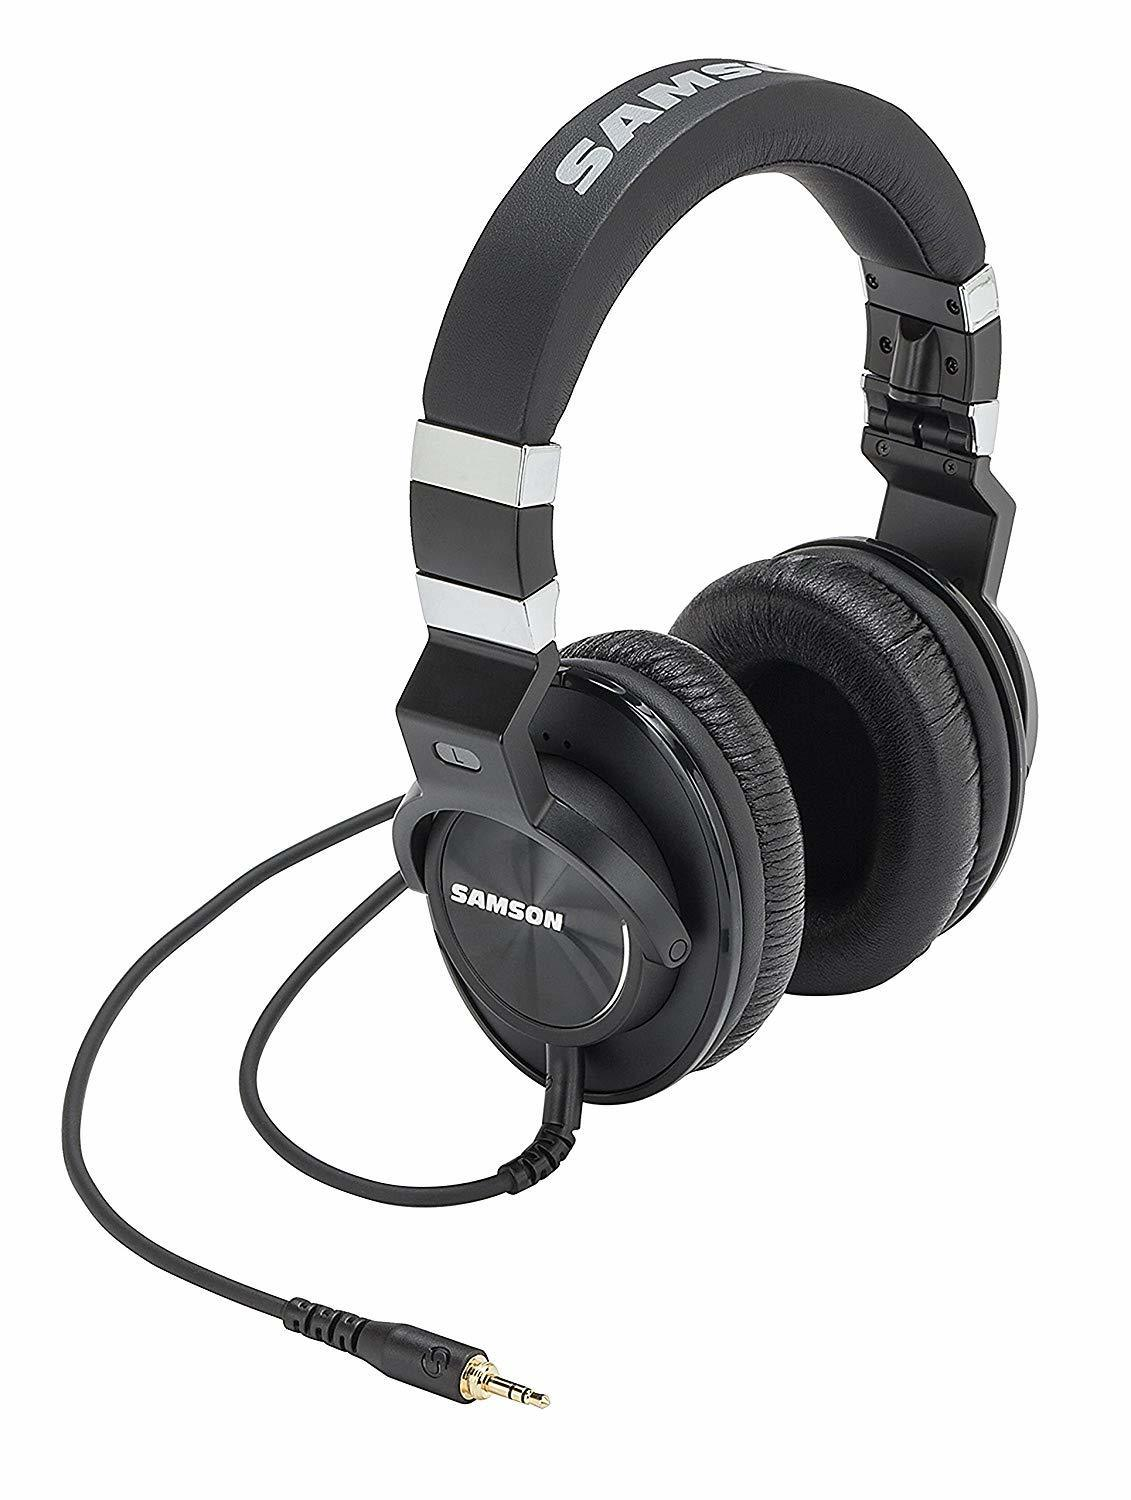 Samson Z25 Professional Closed Back Comfort Wear Earphone Over-ear Studio Monitoring Headphones For Studio Record & Music Lovers image